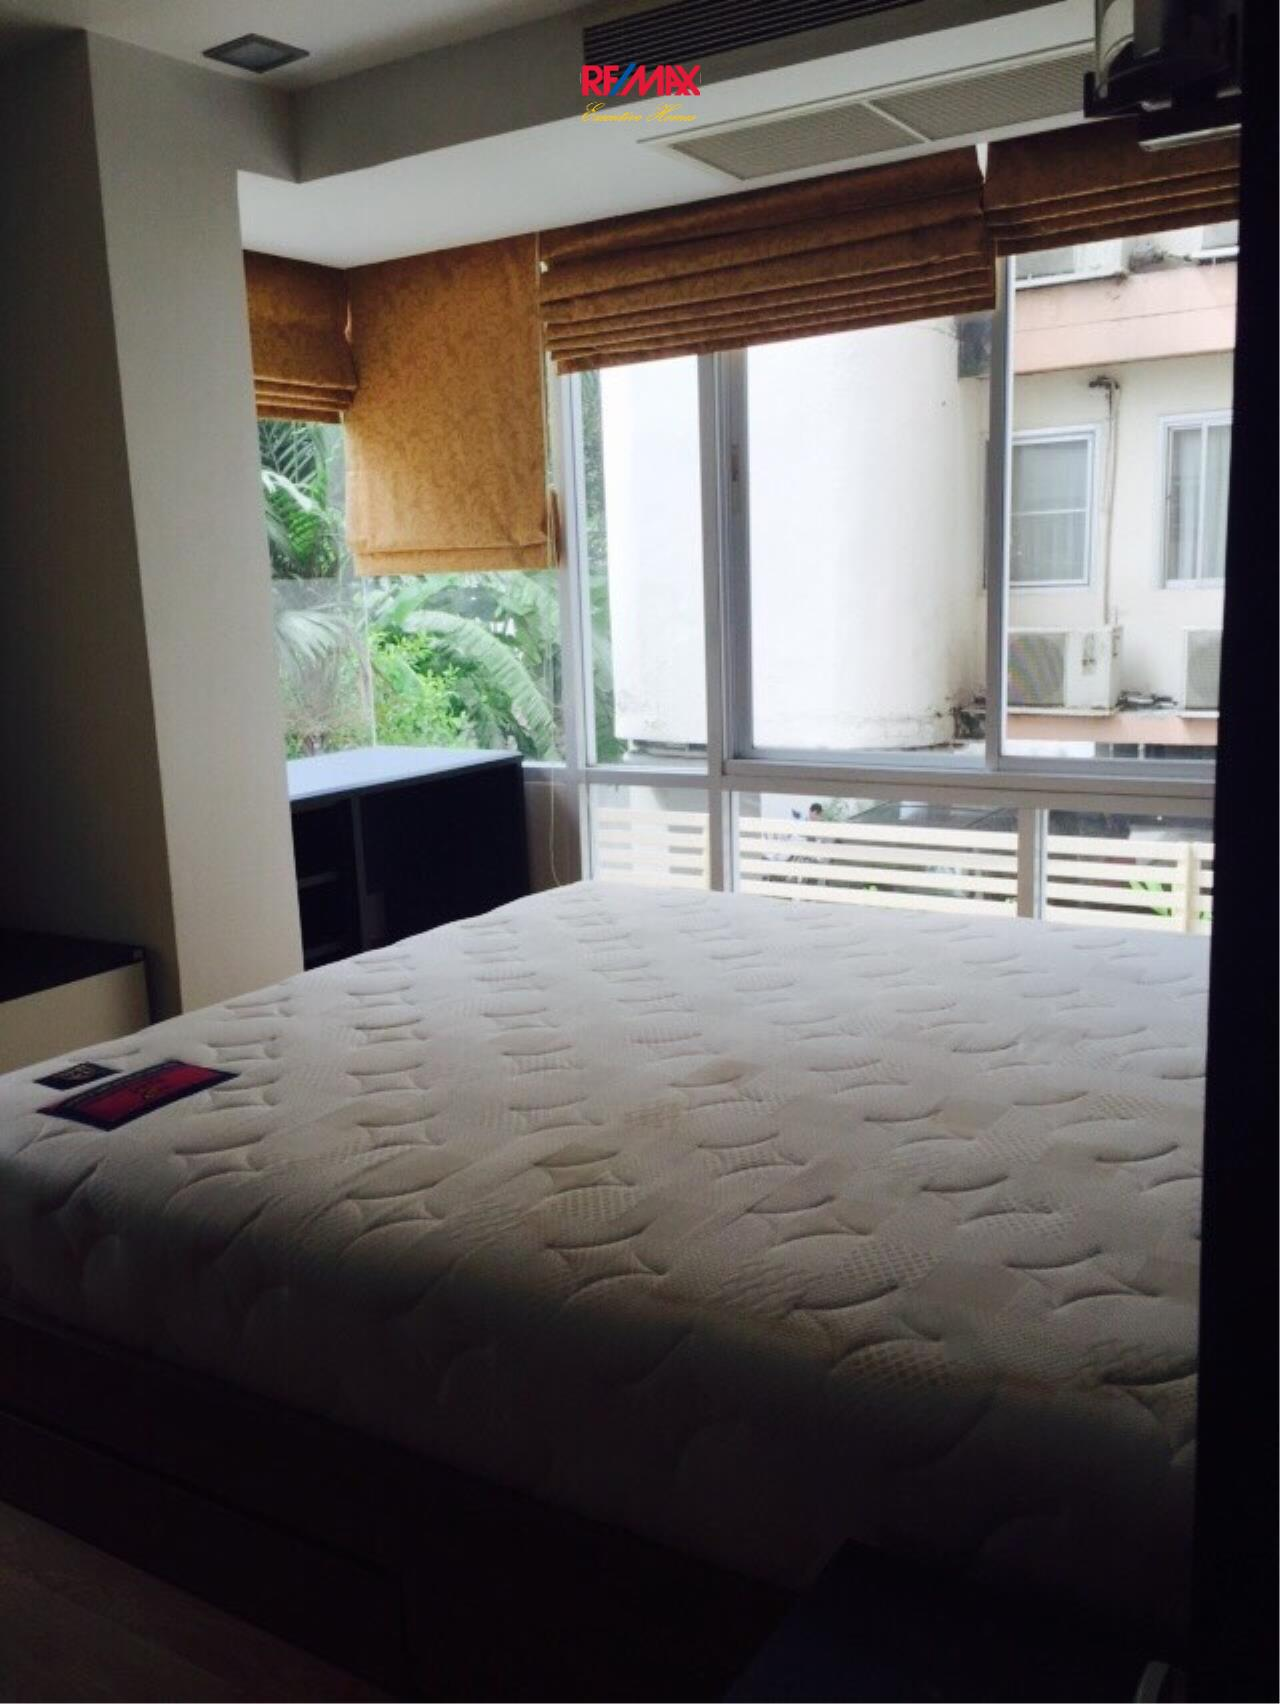 RE/MAX Executive Homes Agency's Cozy 2 Bedroom for Sale Alcove sukhumvit 49 3